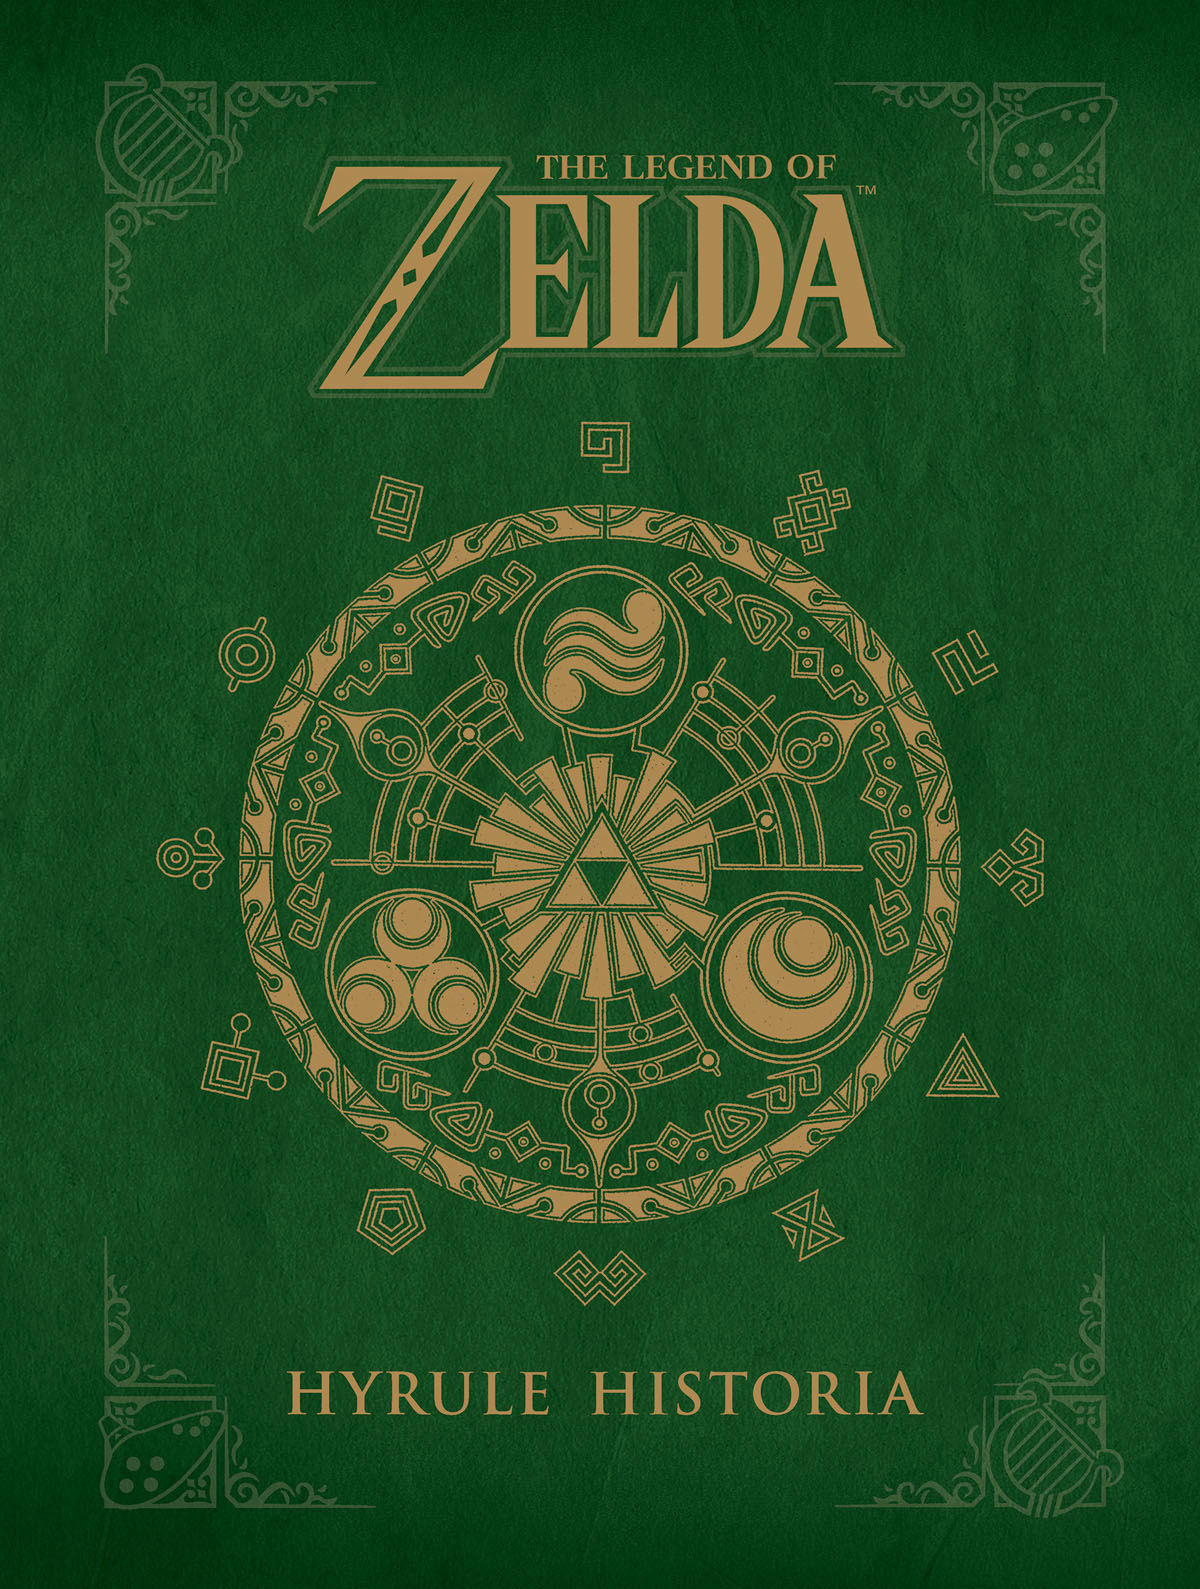 (USE NOV178309) LEGEND OF ZELDA HYRULE HISTORIA HC